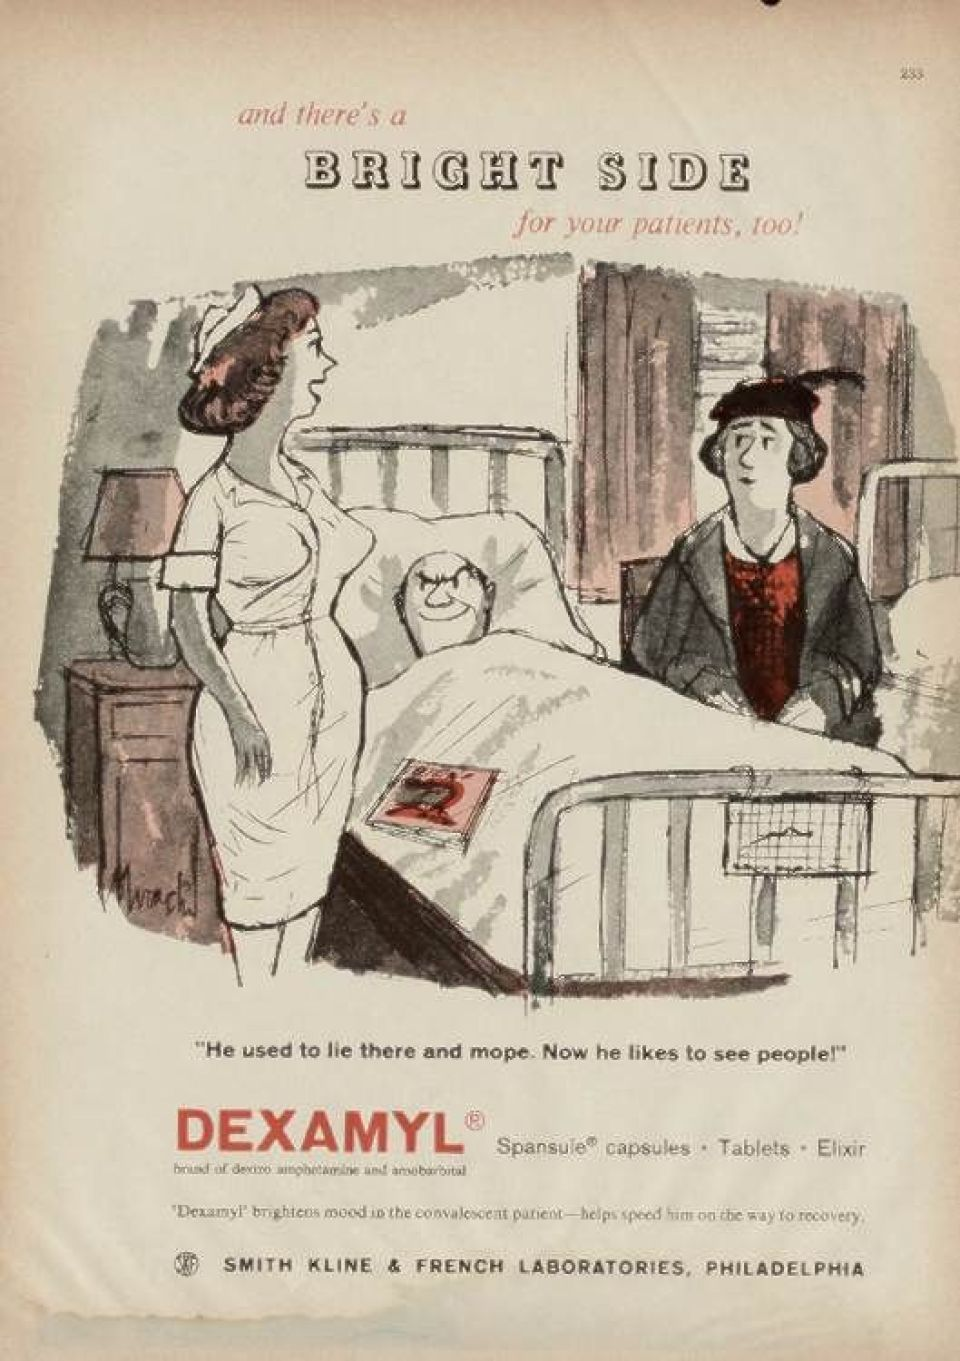 Advert for Dexamyl (known as Drinamyl in the UK)